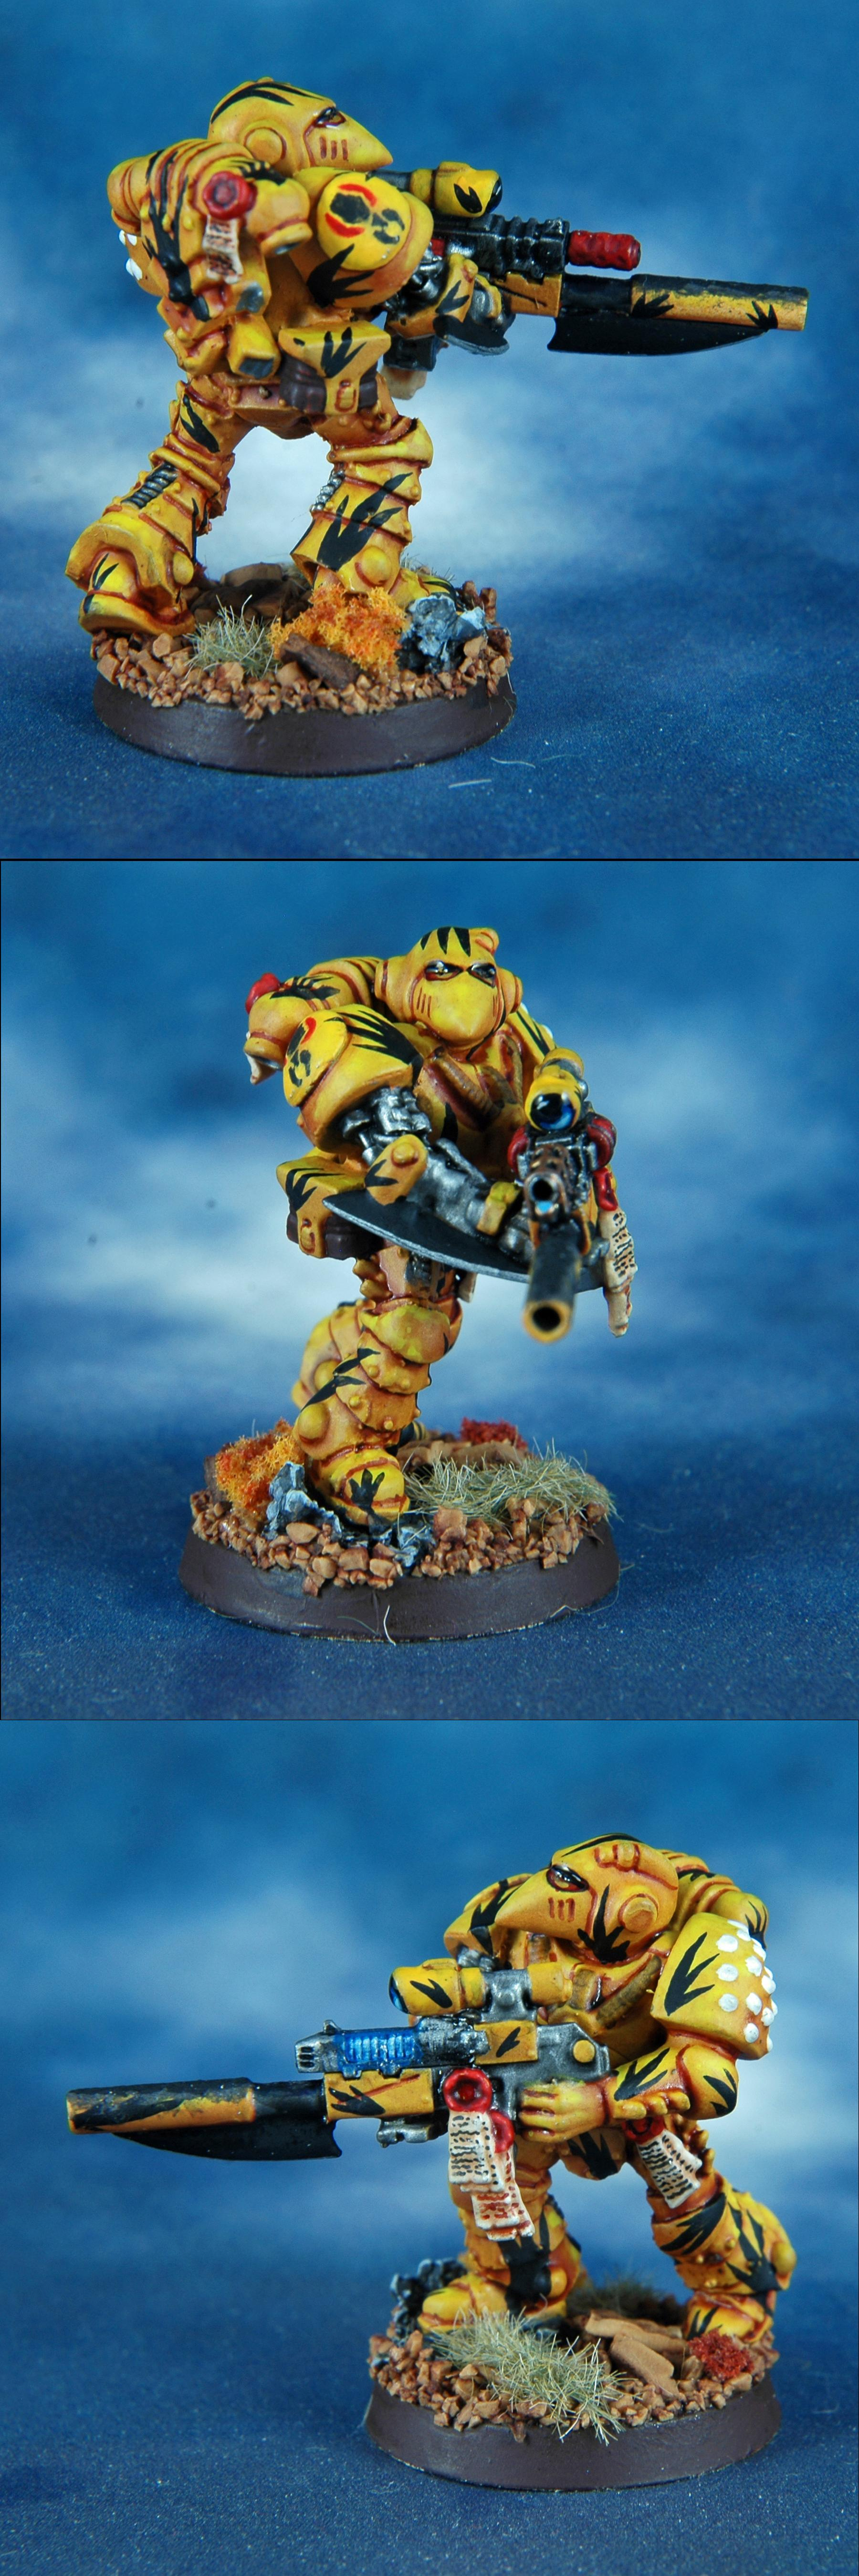 Combi-melta, Mantis Warriors, Snipers, Space Marines, Sternguard, Tranquility, Warhammer 40,000